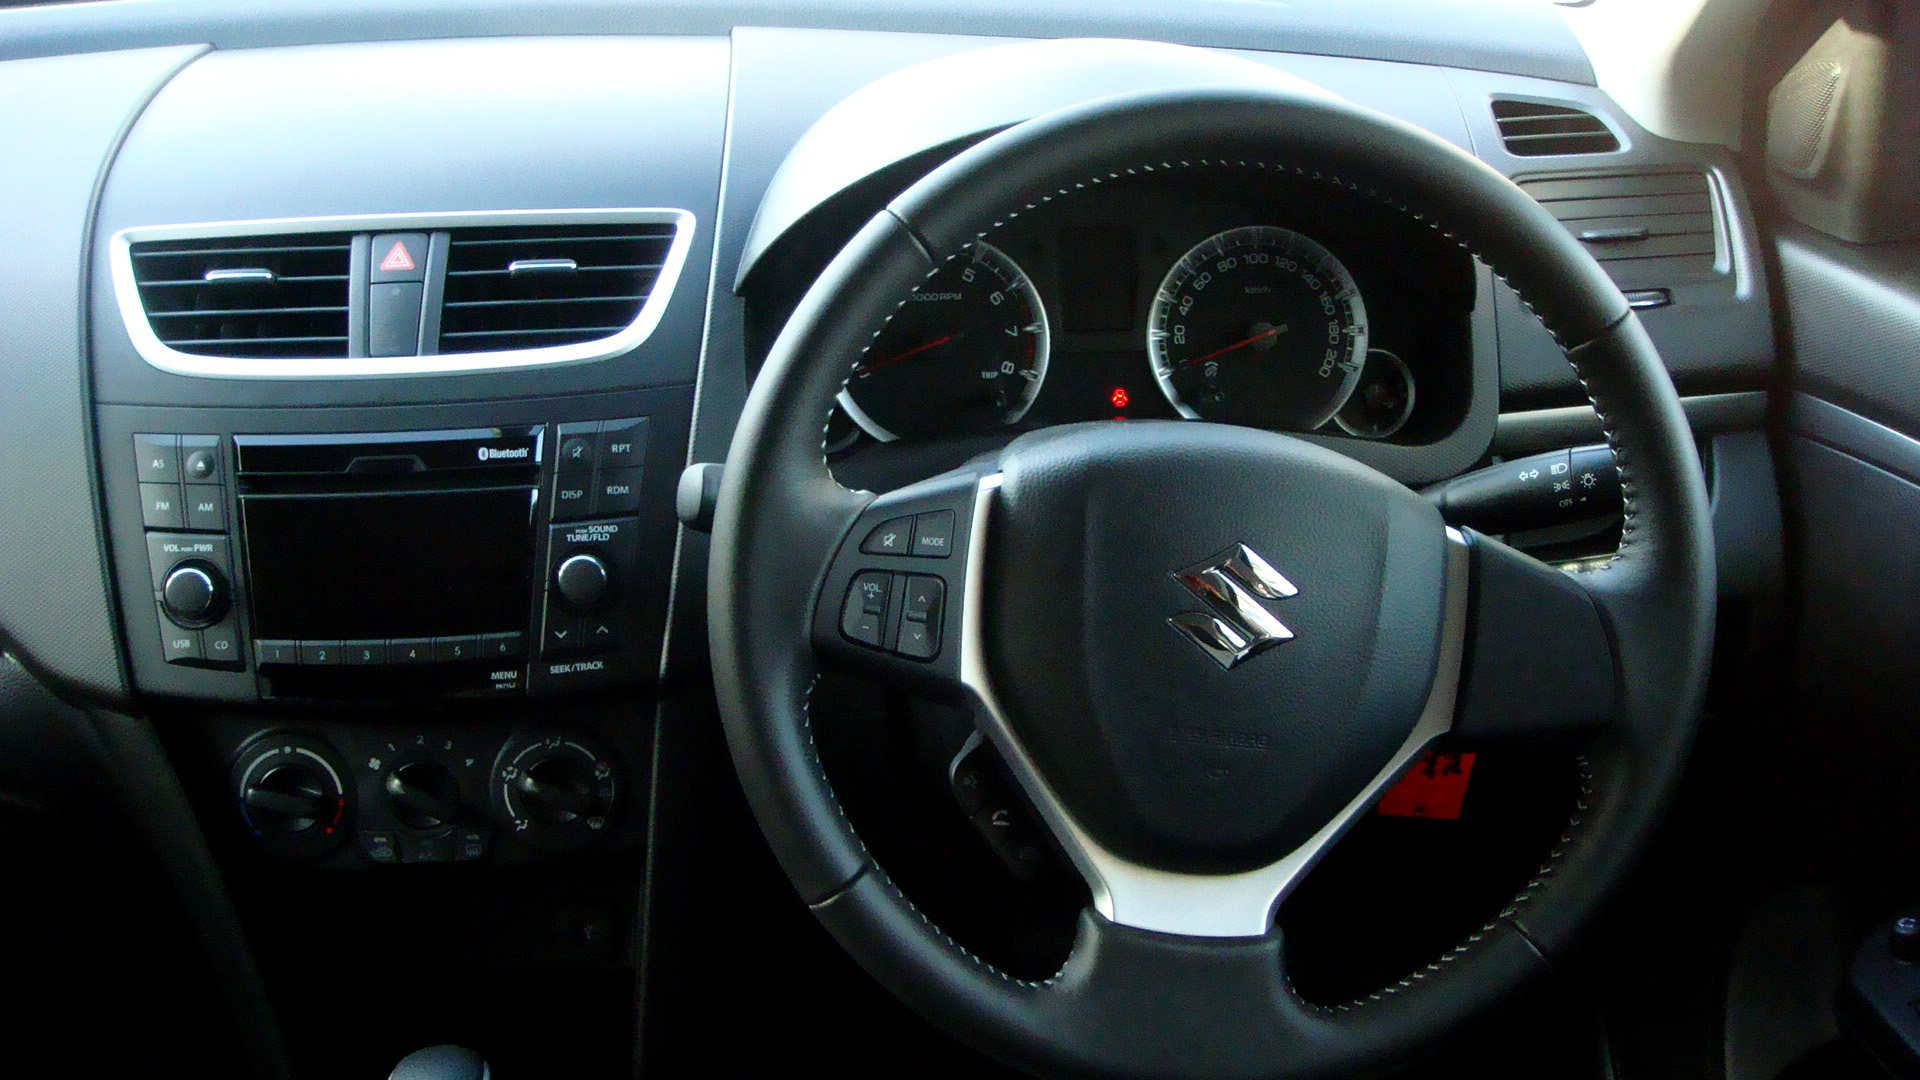 Suzuki Swift Interior 2012 Www Pixshark Com Images